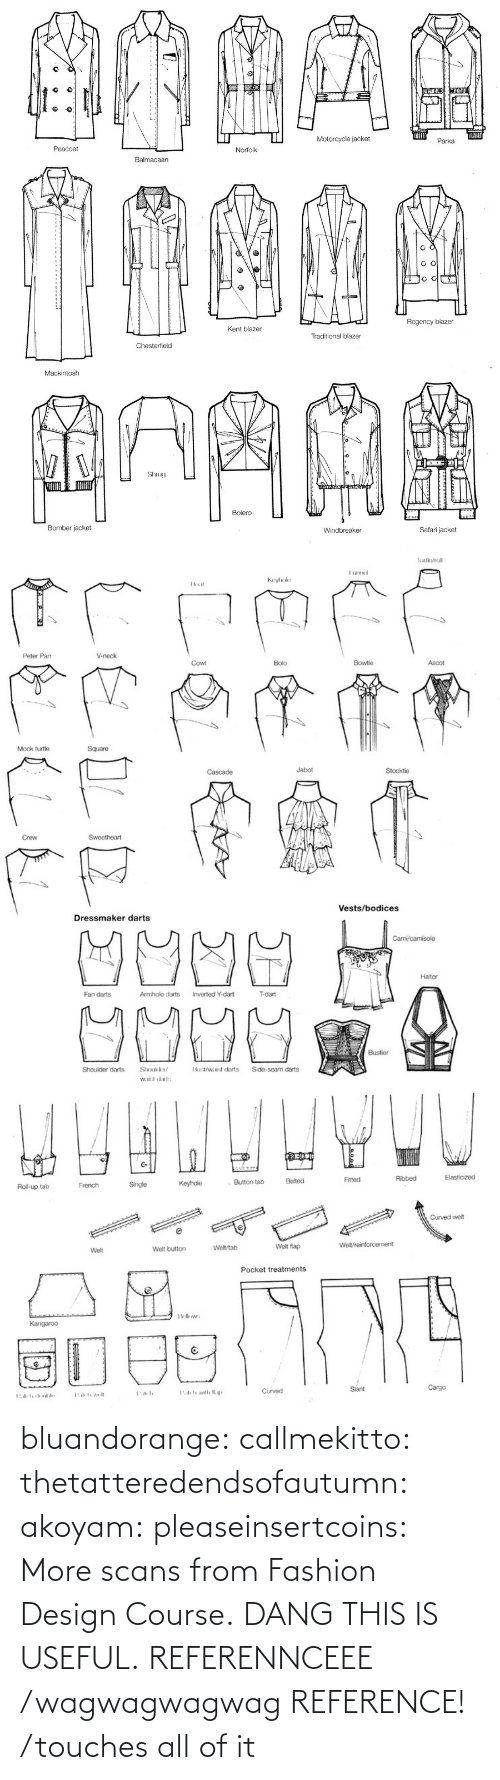 Design: bluandorange:  callmekitto:  thetatteredendsofautumn:  akoyam:  pleaseinsertcoins:  More scans from Fashion Design Course.  DANG THIS IS USEFUL.  REFERENNCEEE  /wagwagwagwag REFERENCE!  /touches all of it